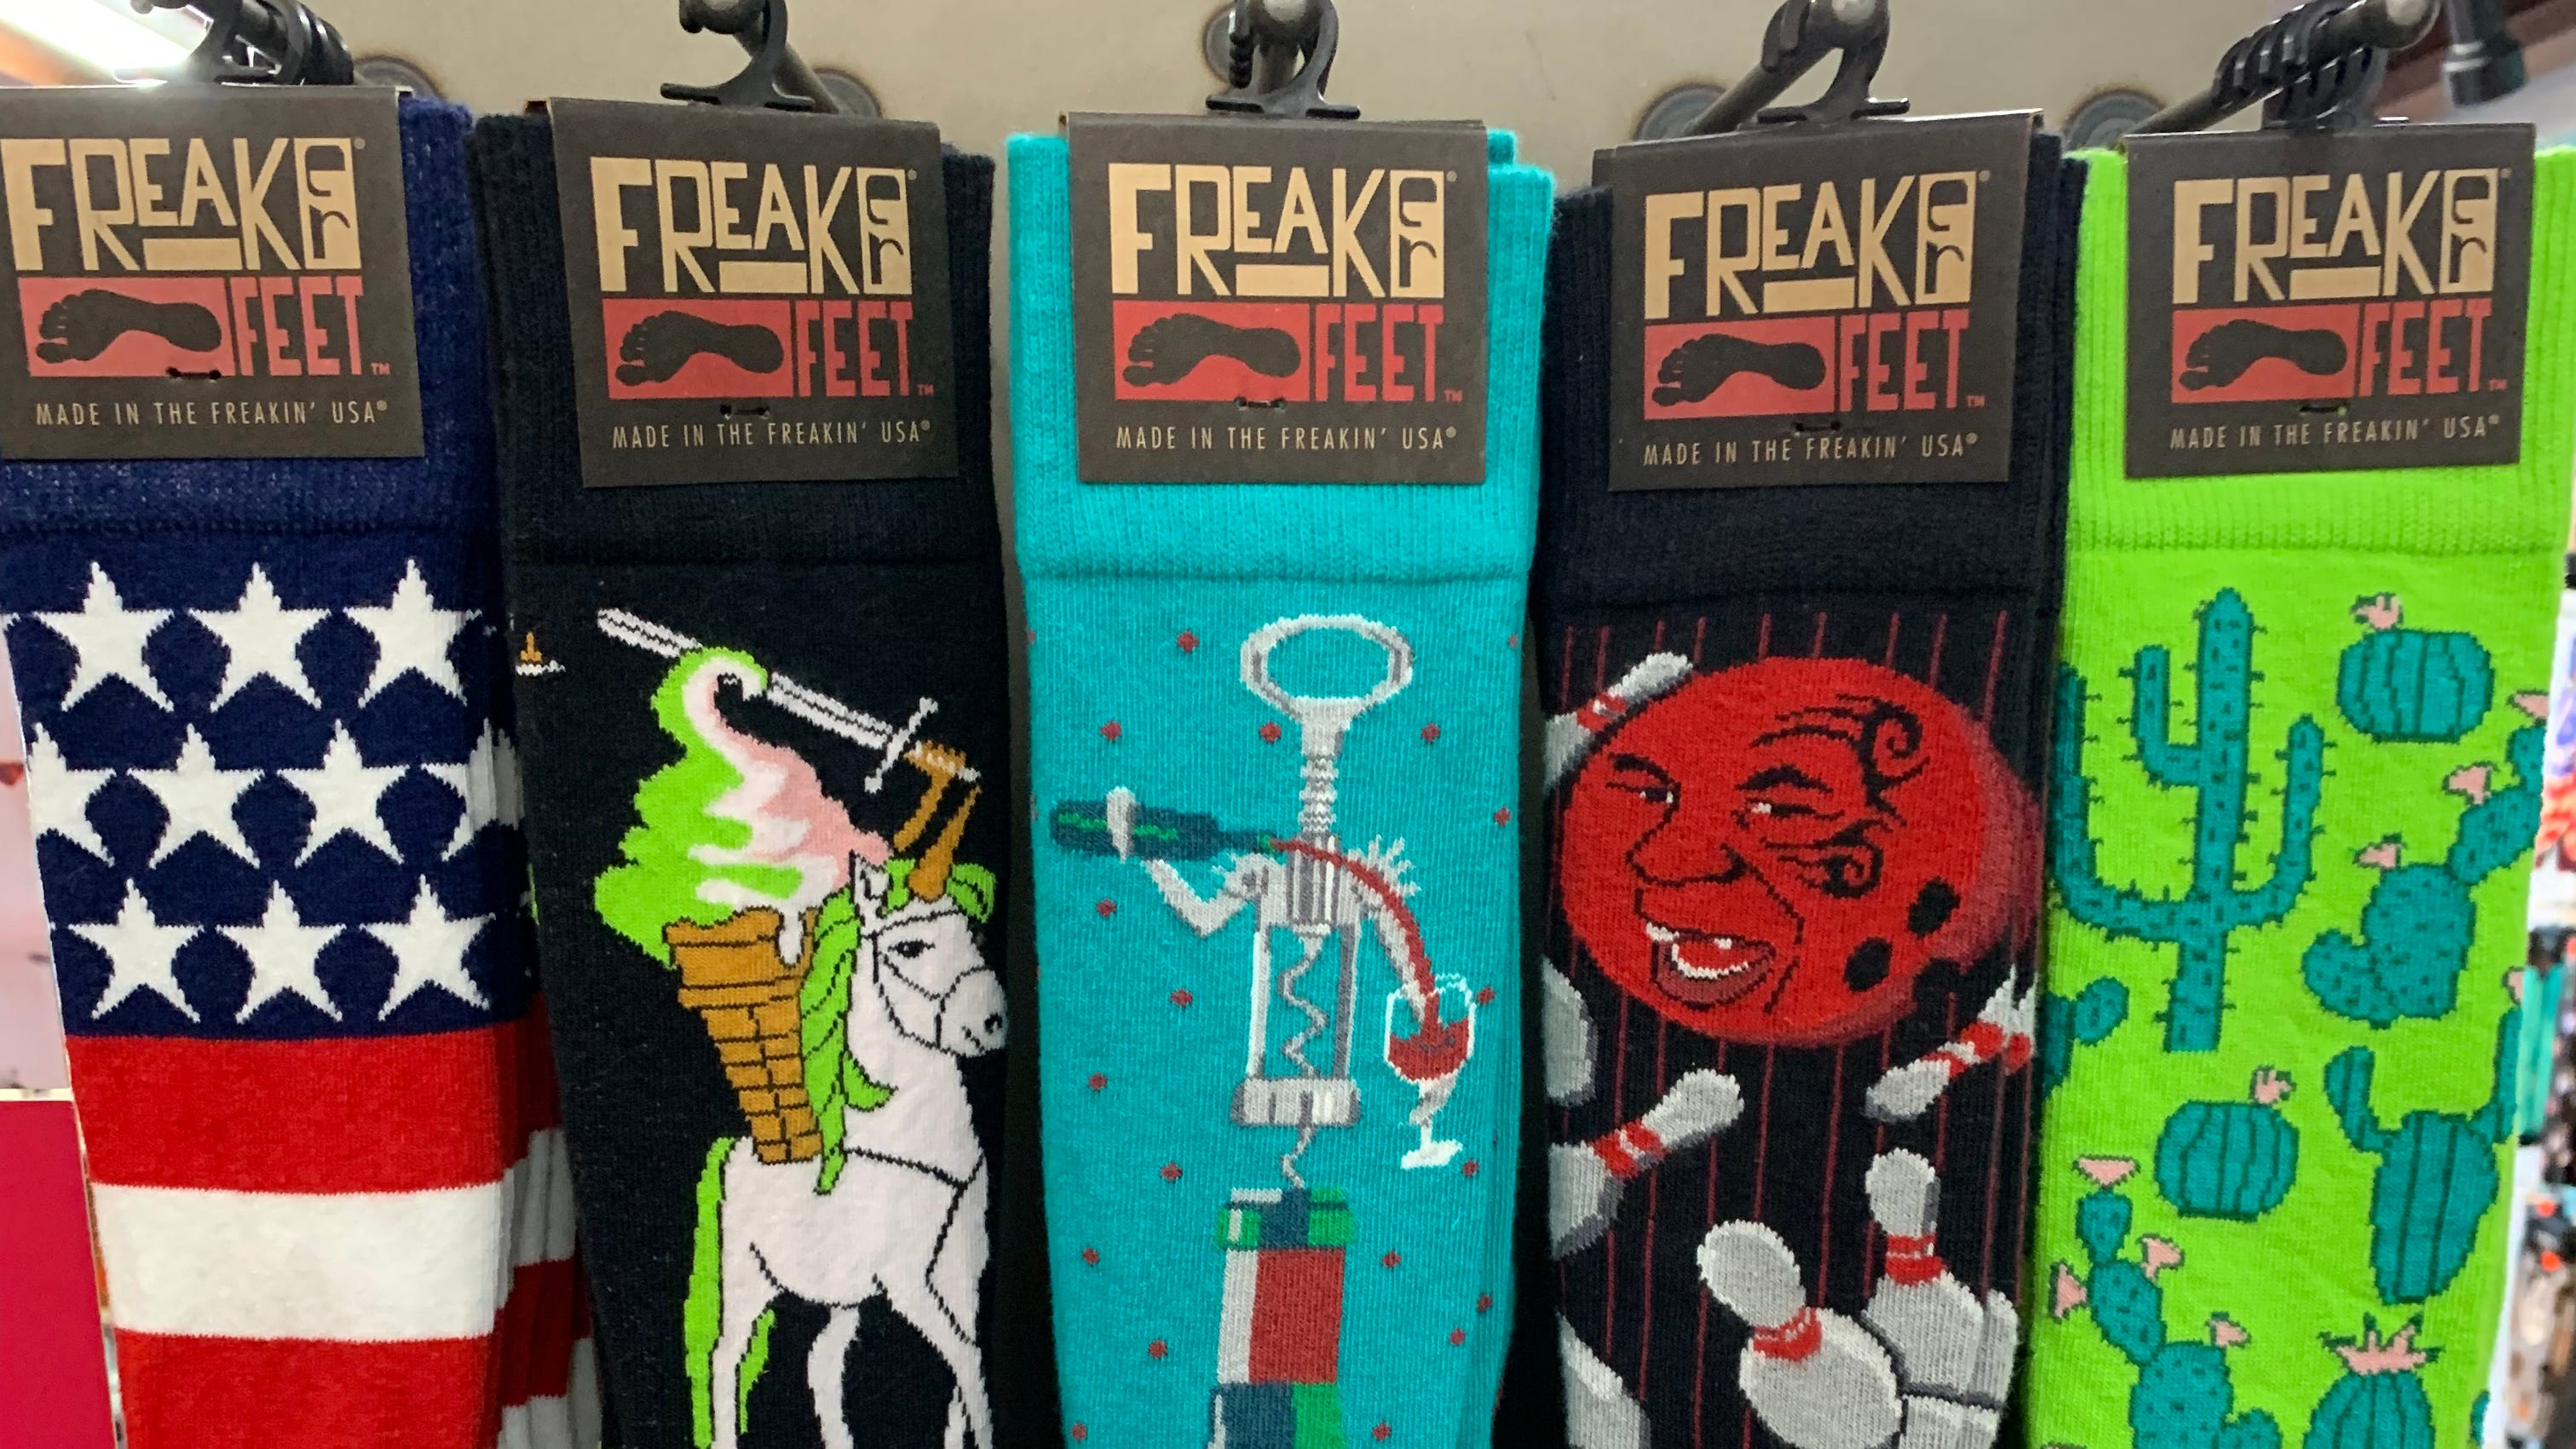 Freaker USA was founded in Wilmington in 2011 and specializes in beverage insulators and socks.